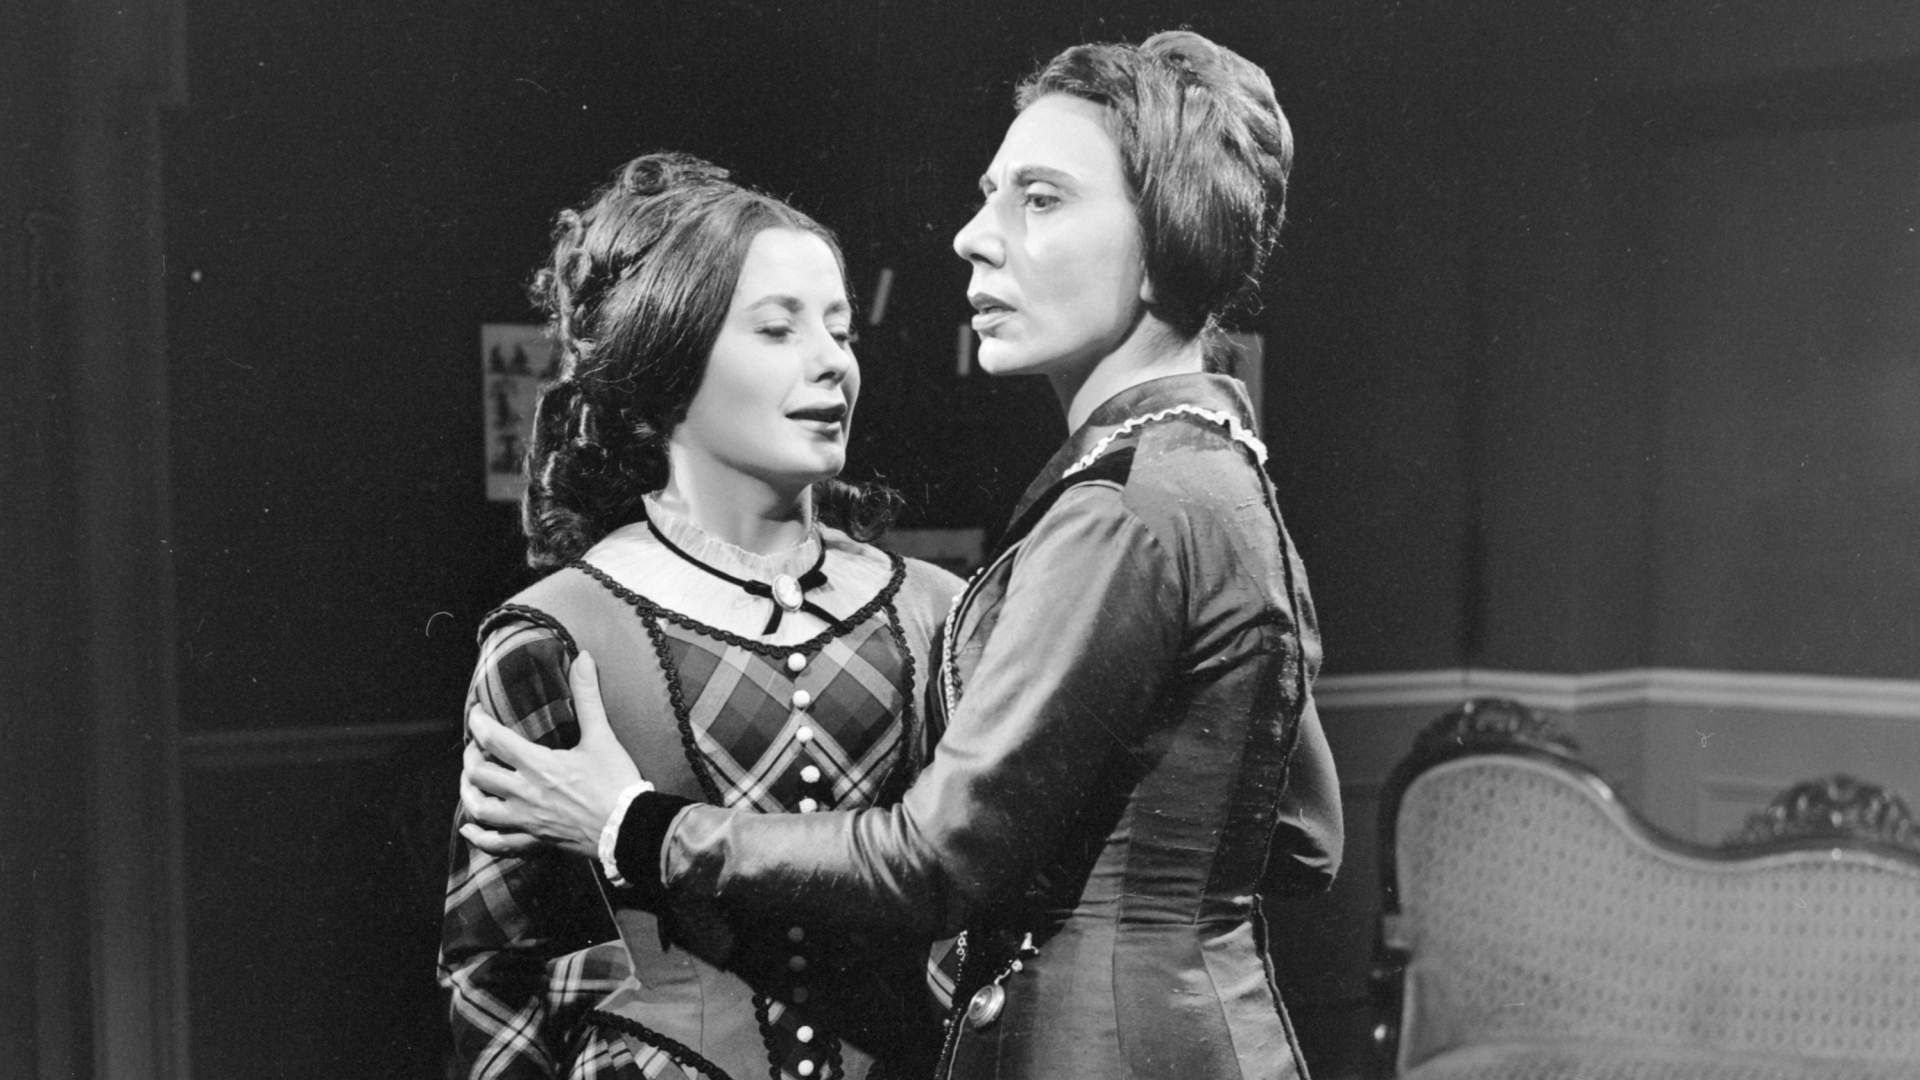 """Michèle André and Alice Sapritch in """"The Bostonians"""", the drama adapted by Jean-Louis Curtis from Henry James's novel. (Credit: Bernard Pascucci/INA via Getty Images)"""